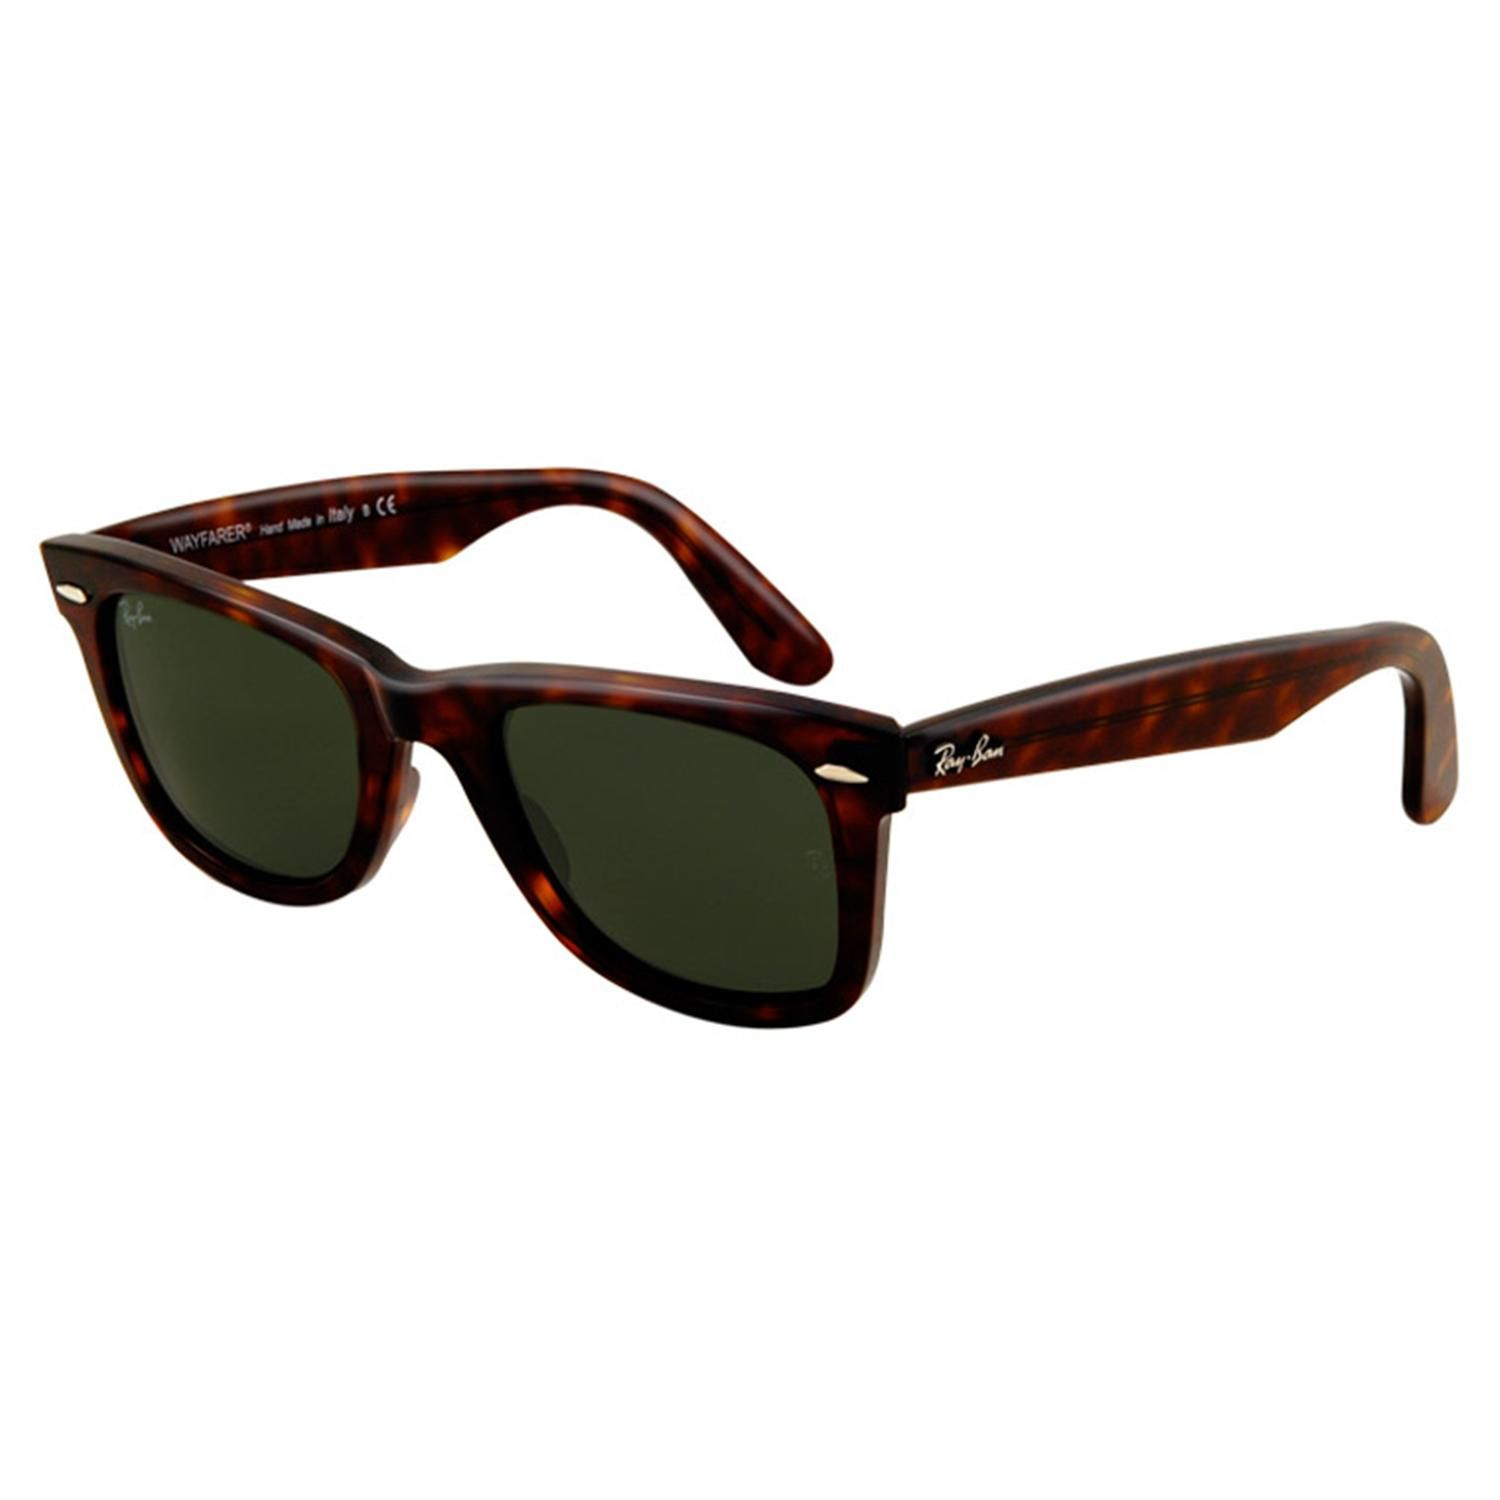 #Ray-Ban #Sunglasses RB2140 Original Wayfarer $31 #sale . We are proud to  offer the brilliant Ray-Ban RB2140 Original Wayfarer SunglassesWhite  Frame/Black ...